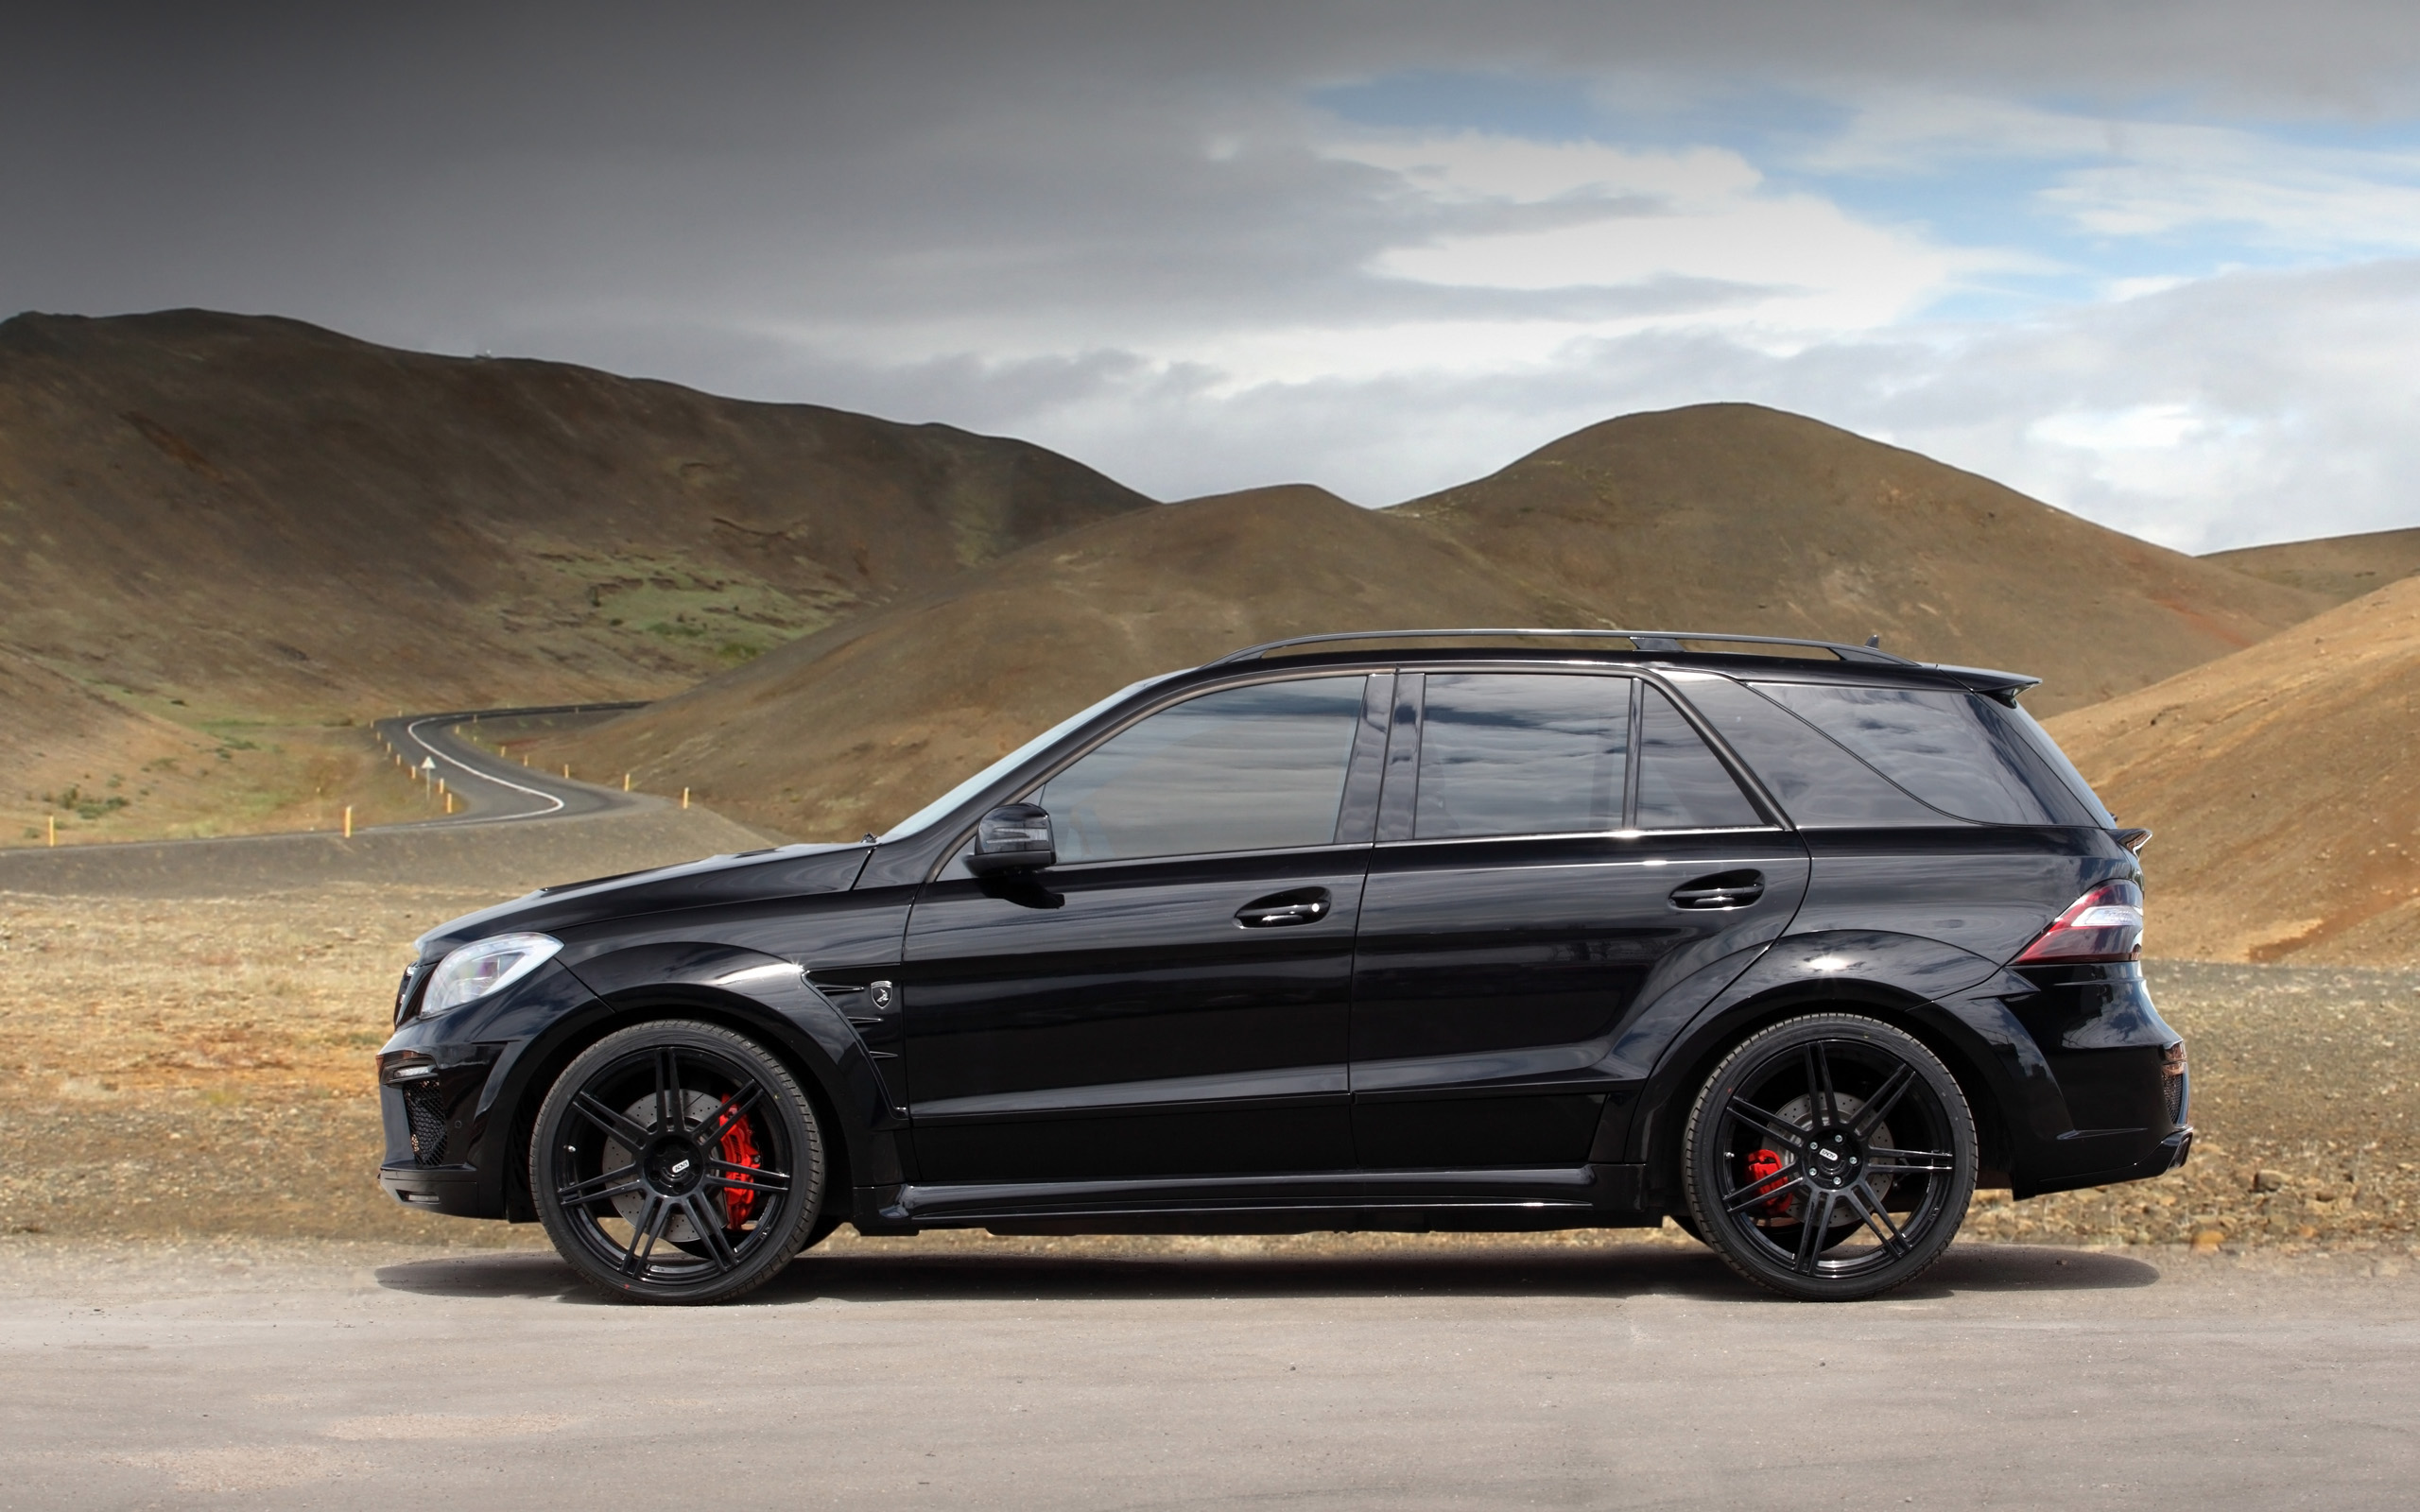 2013 topcar mercedes benz ml 63 amg inferno suv tuning hc for Mercedes benz ml350 2007